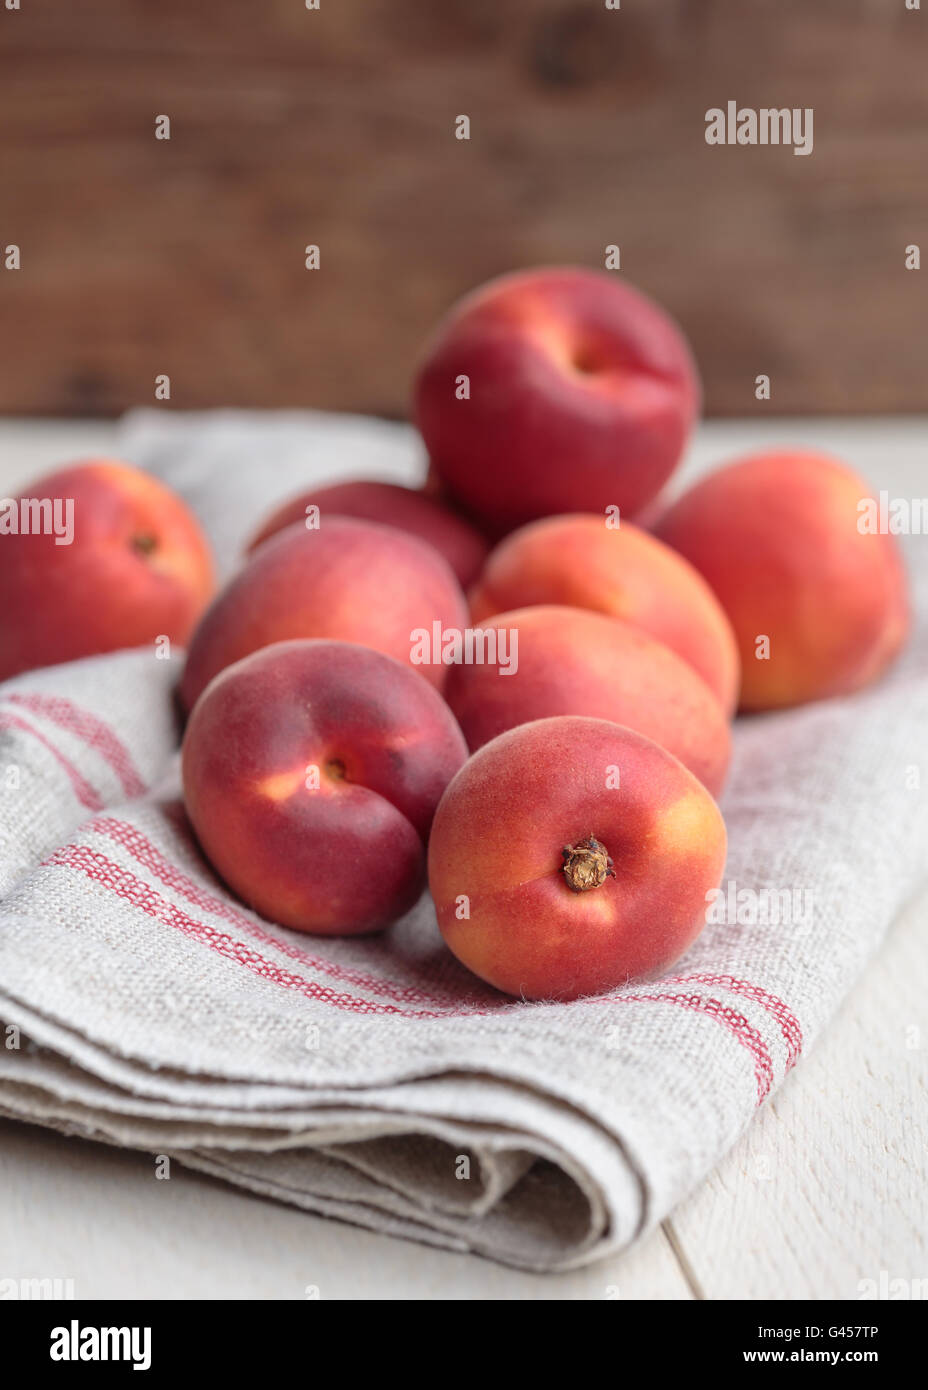 Red apricots on kitchen towel - Stock Image